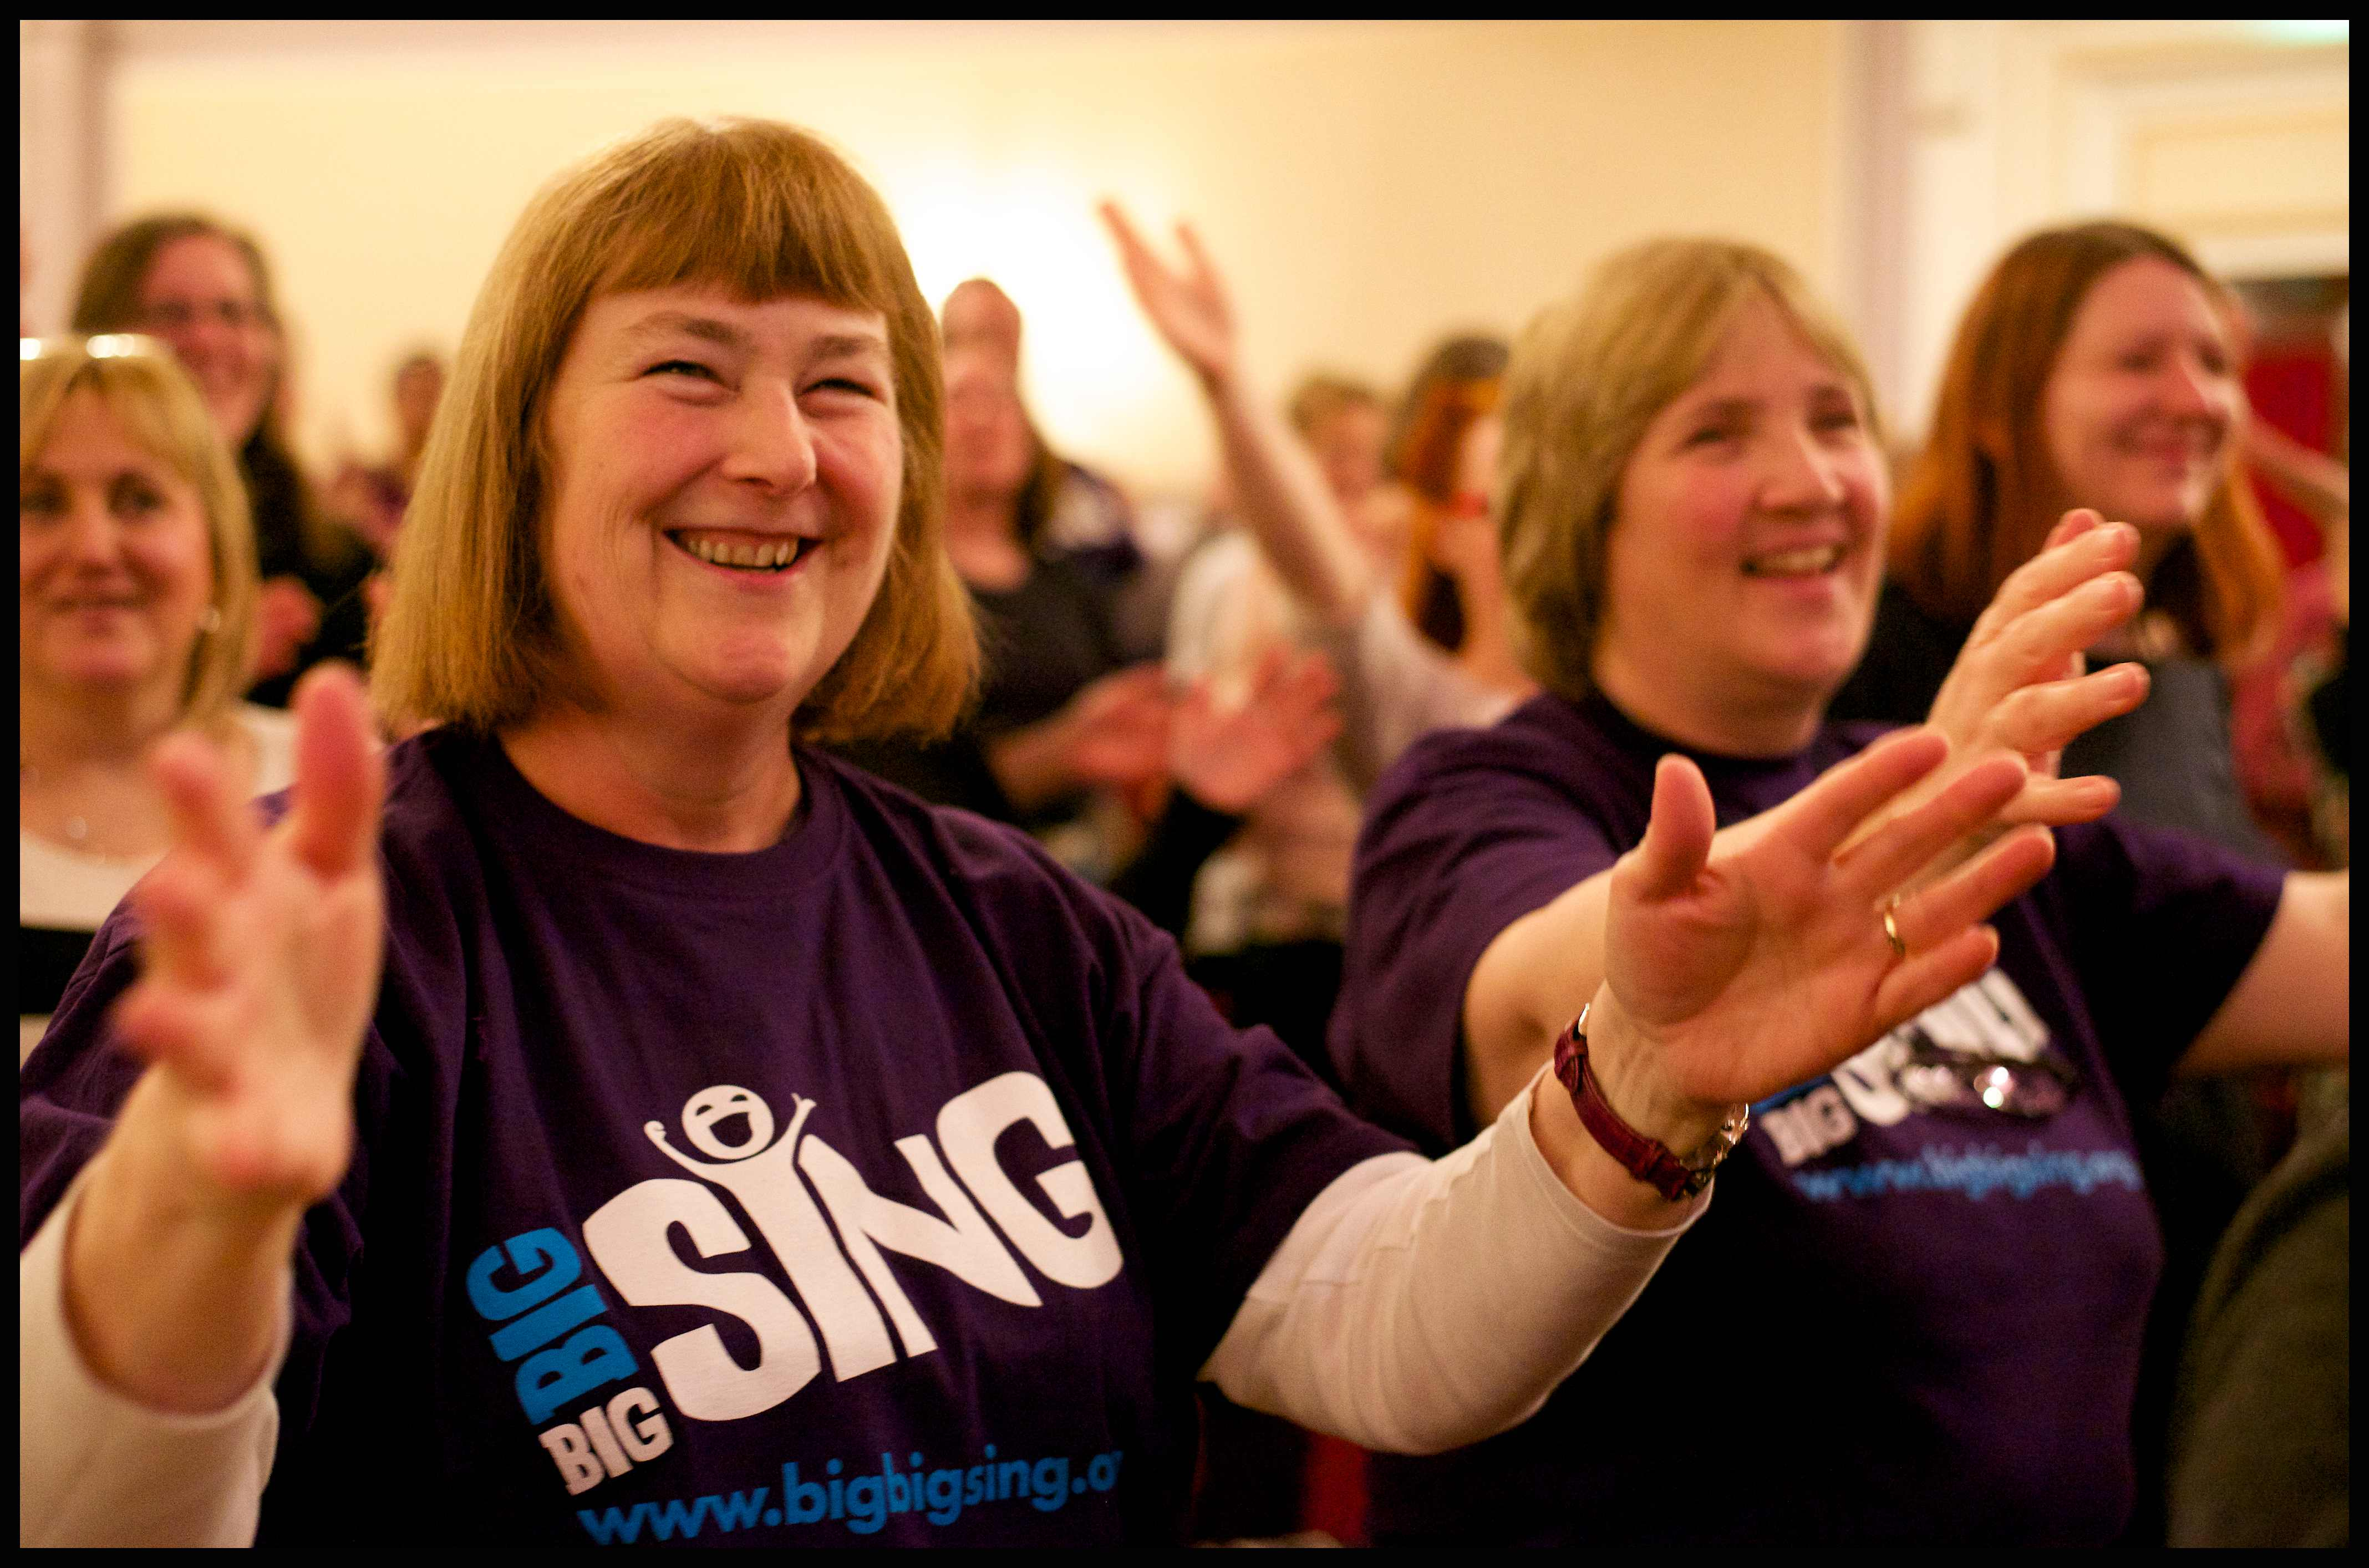 BIG BIG SING DAY – ABERDEEN